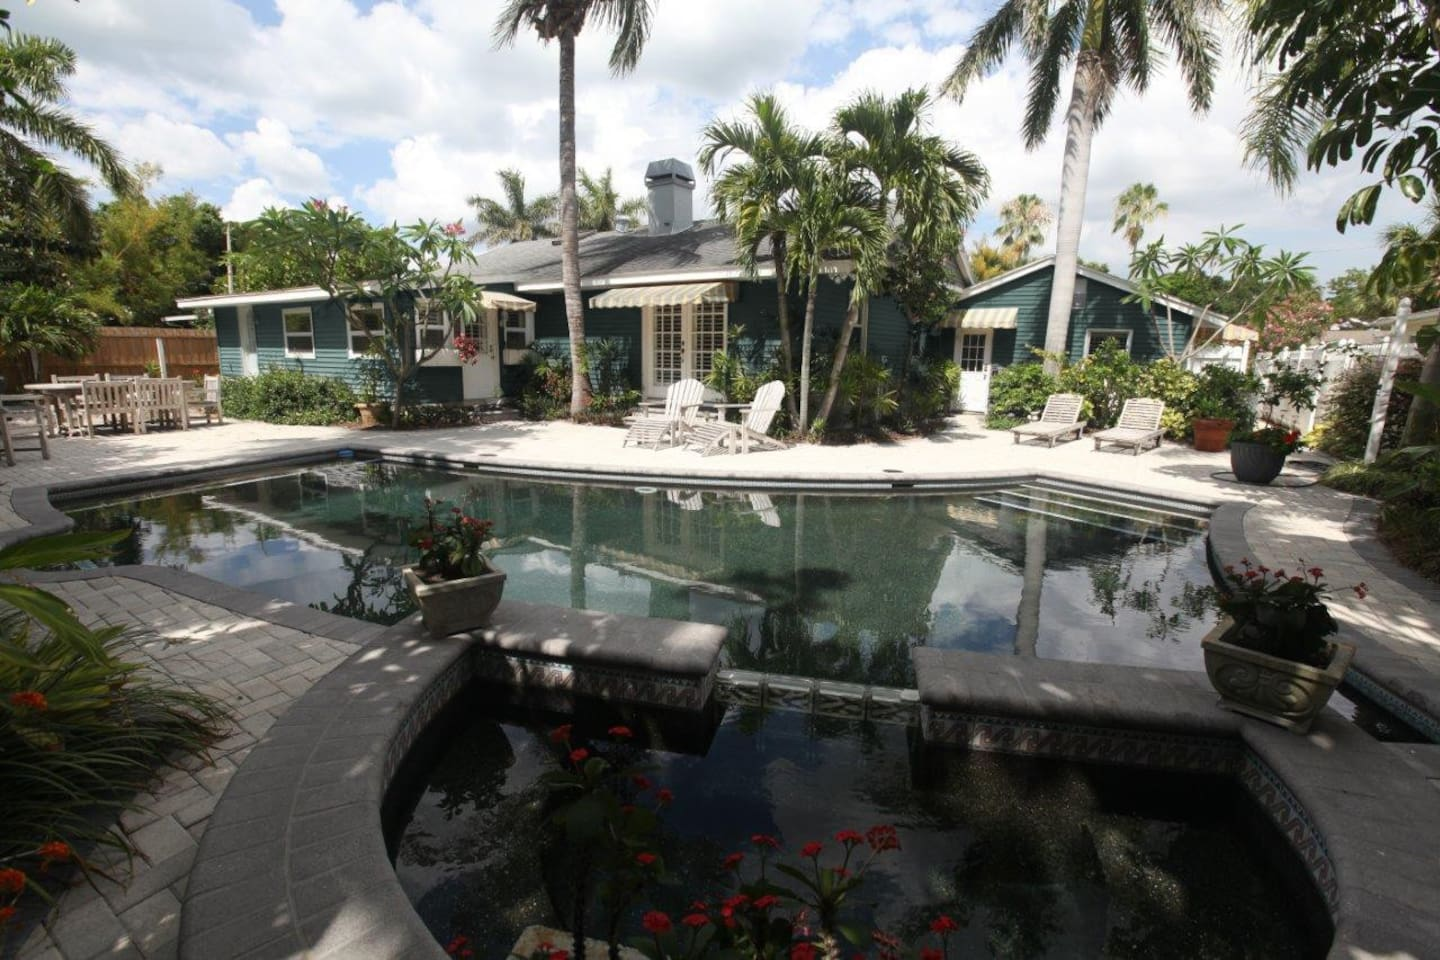 Spa, Pool and back of house